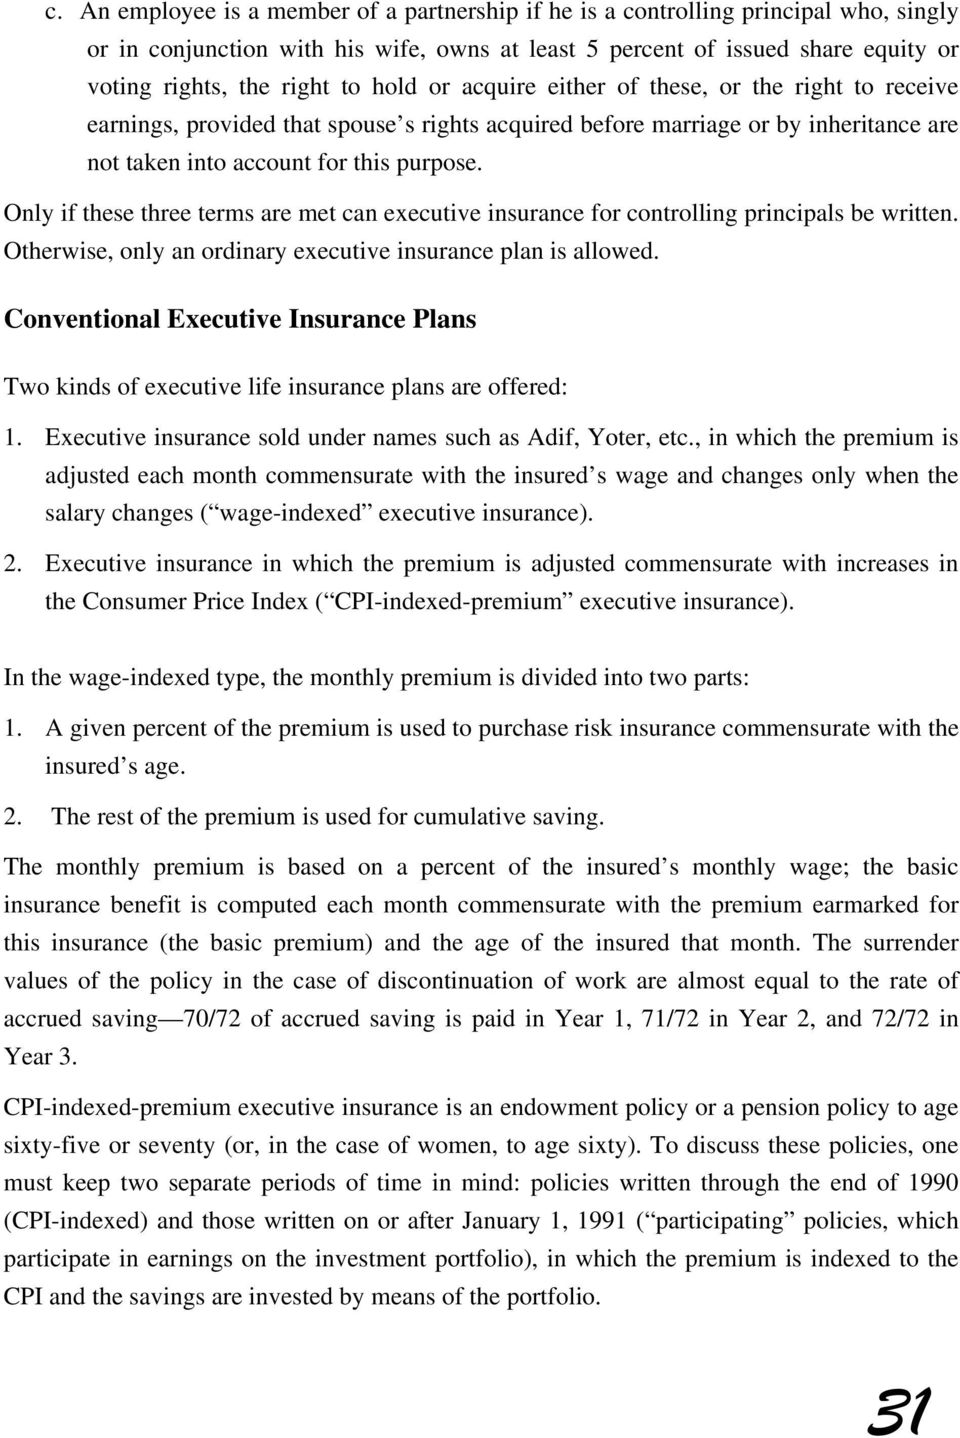 Only if these three terms are met can executive insurance for s be written. Otherwise, only an ordinary executive insurance plan is allow.